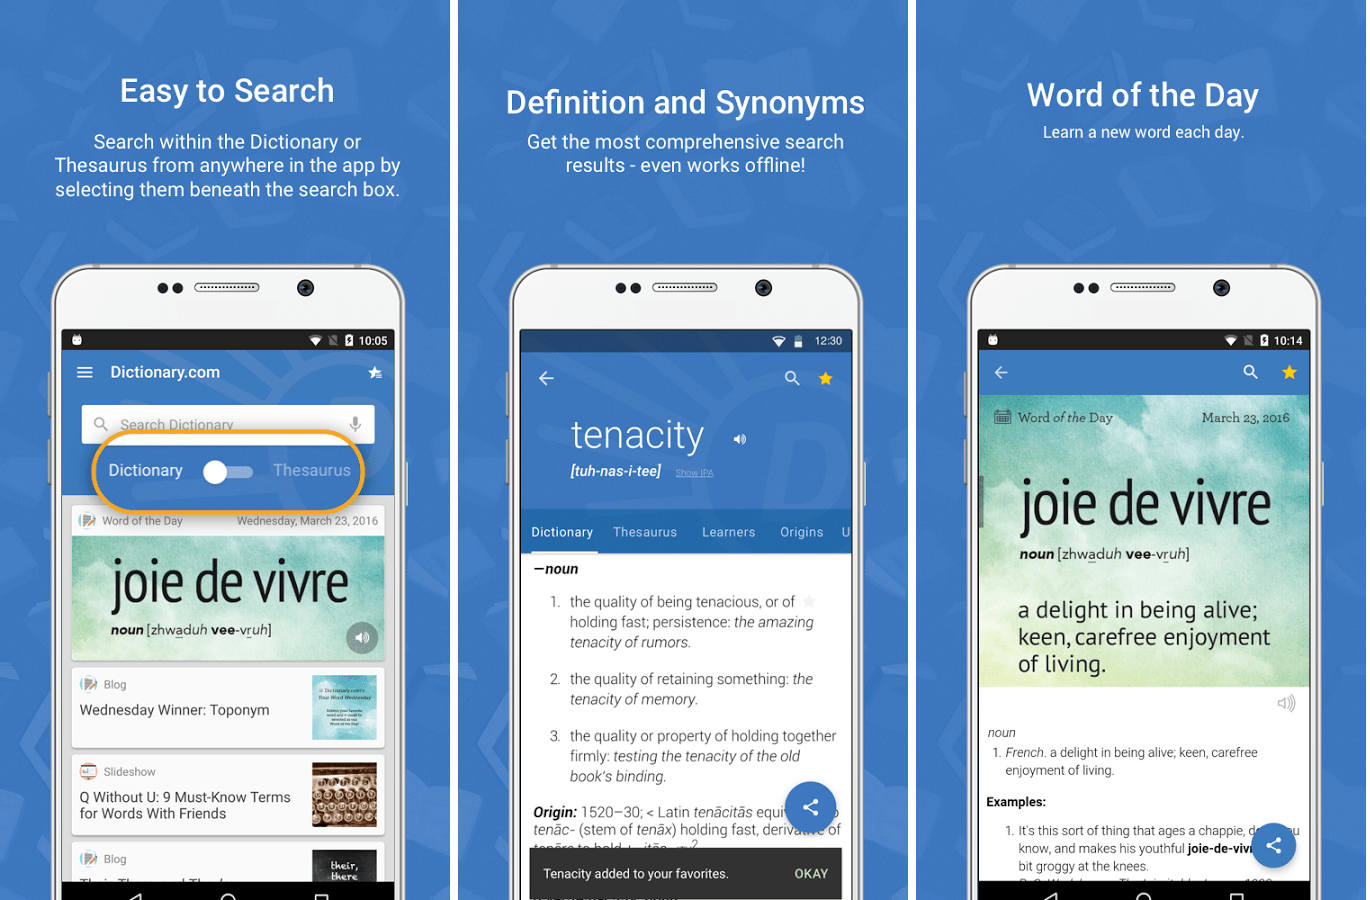 Best free dictionary apps for Android in 2018